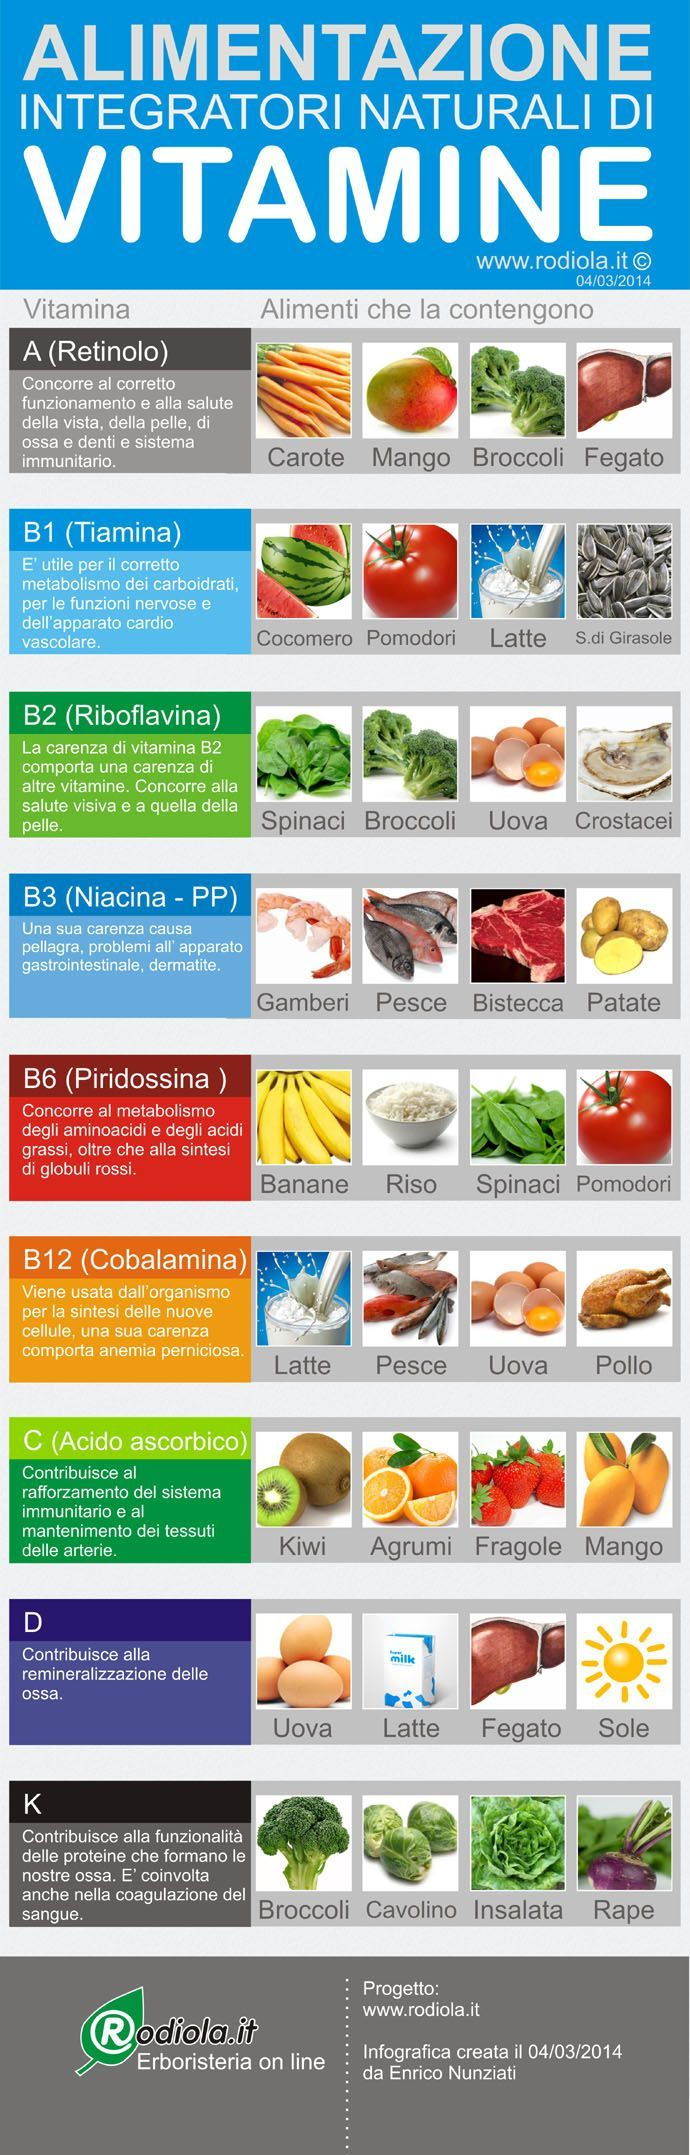 Integratori naturali di vitamine